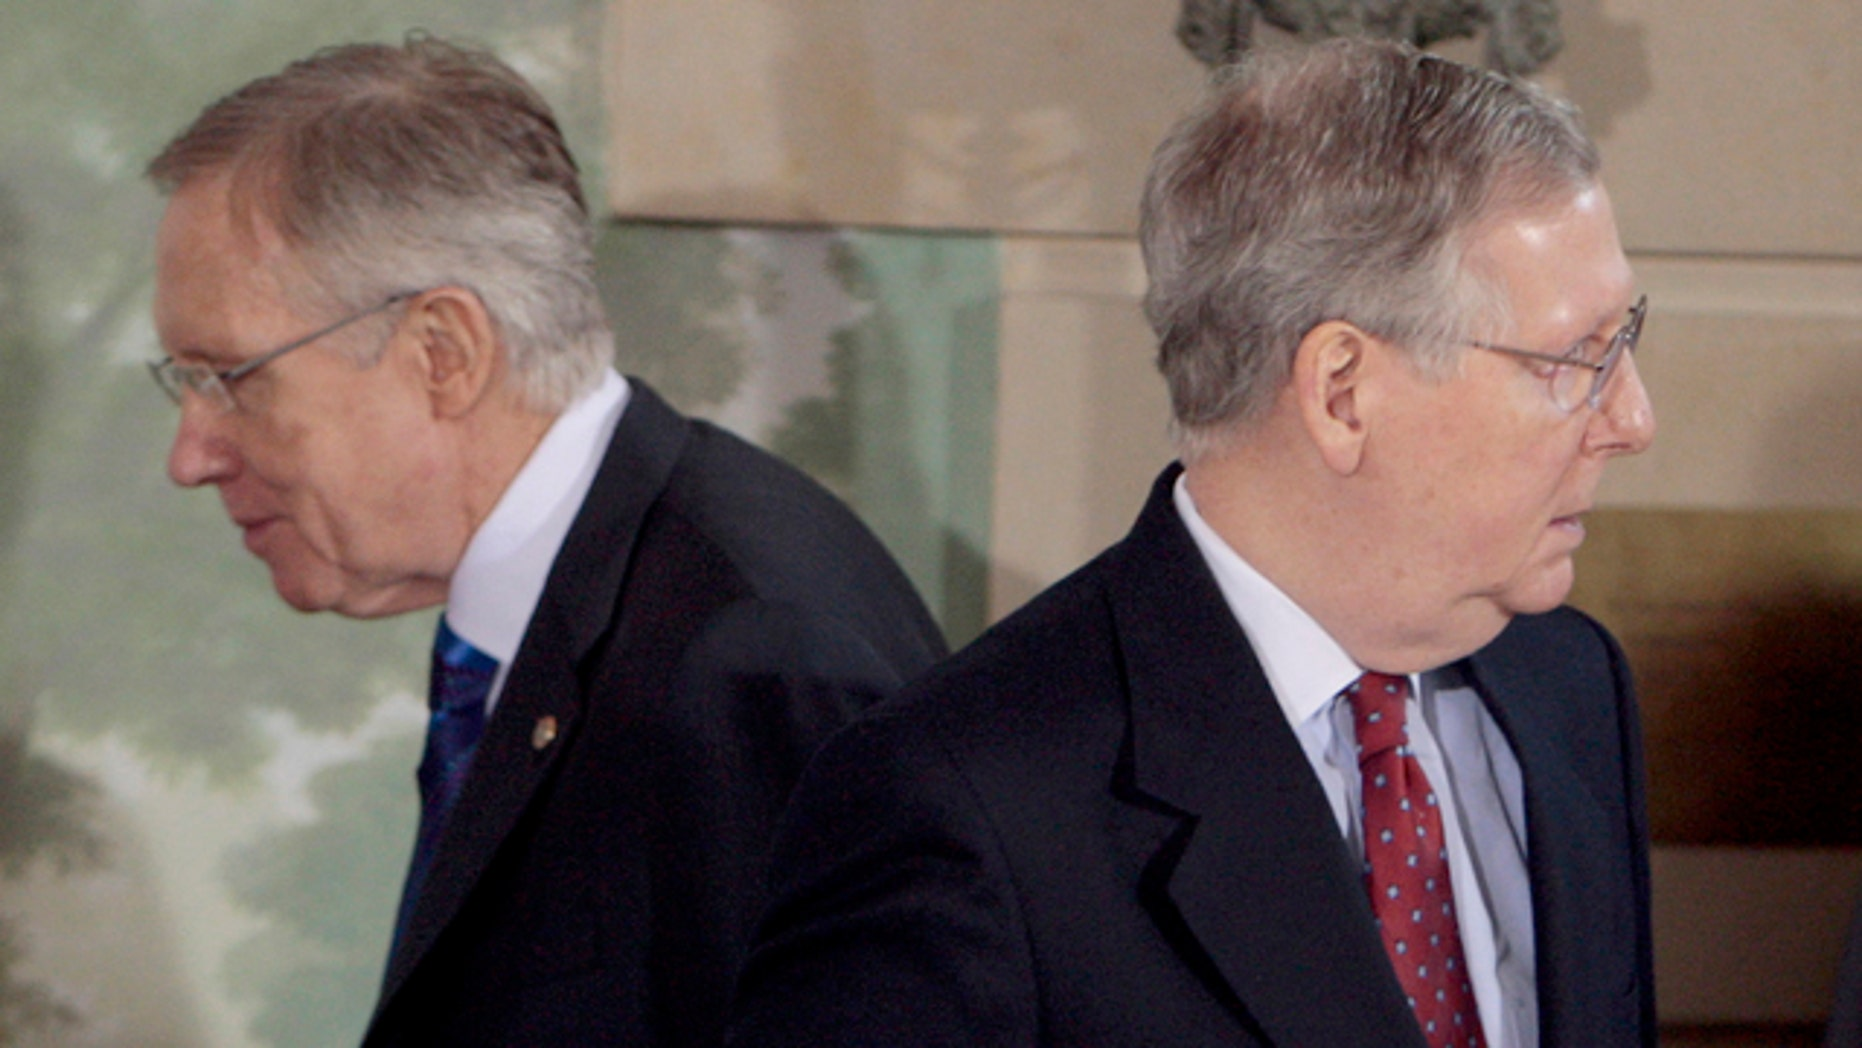 In this Feb. 25, 2010, file photo Senate Majority Leader Harry Reid of Nev., left, walks past Senate Minority Leader Mitch McConnell of Ky., during a meeting at the Blair House in Washington. Reid has promised he will not let GOP's health care repeal effort come up for debate on Senate floor, while McConnell says the Senate will vote on a bill to repeal ObamaCare.